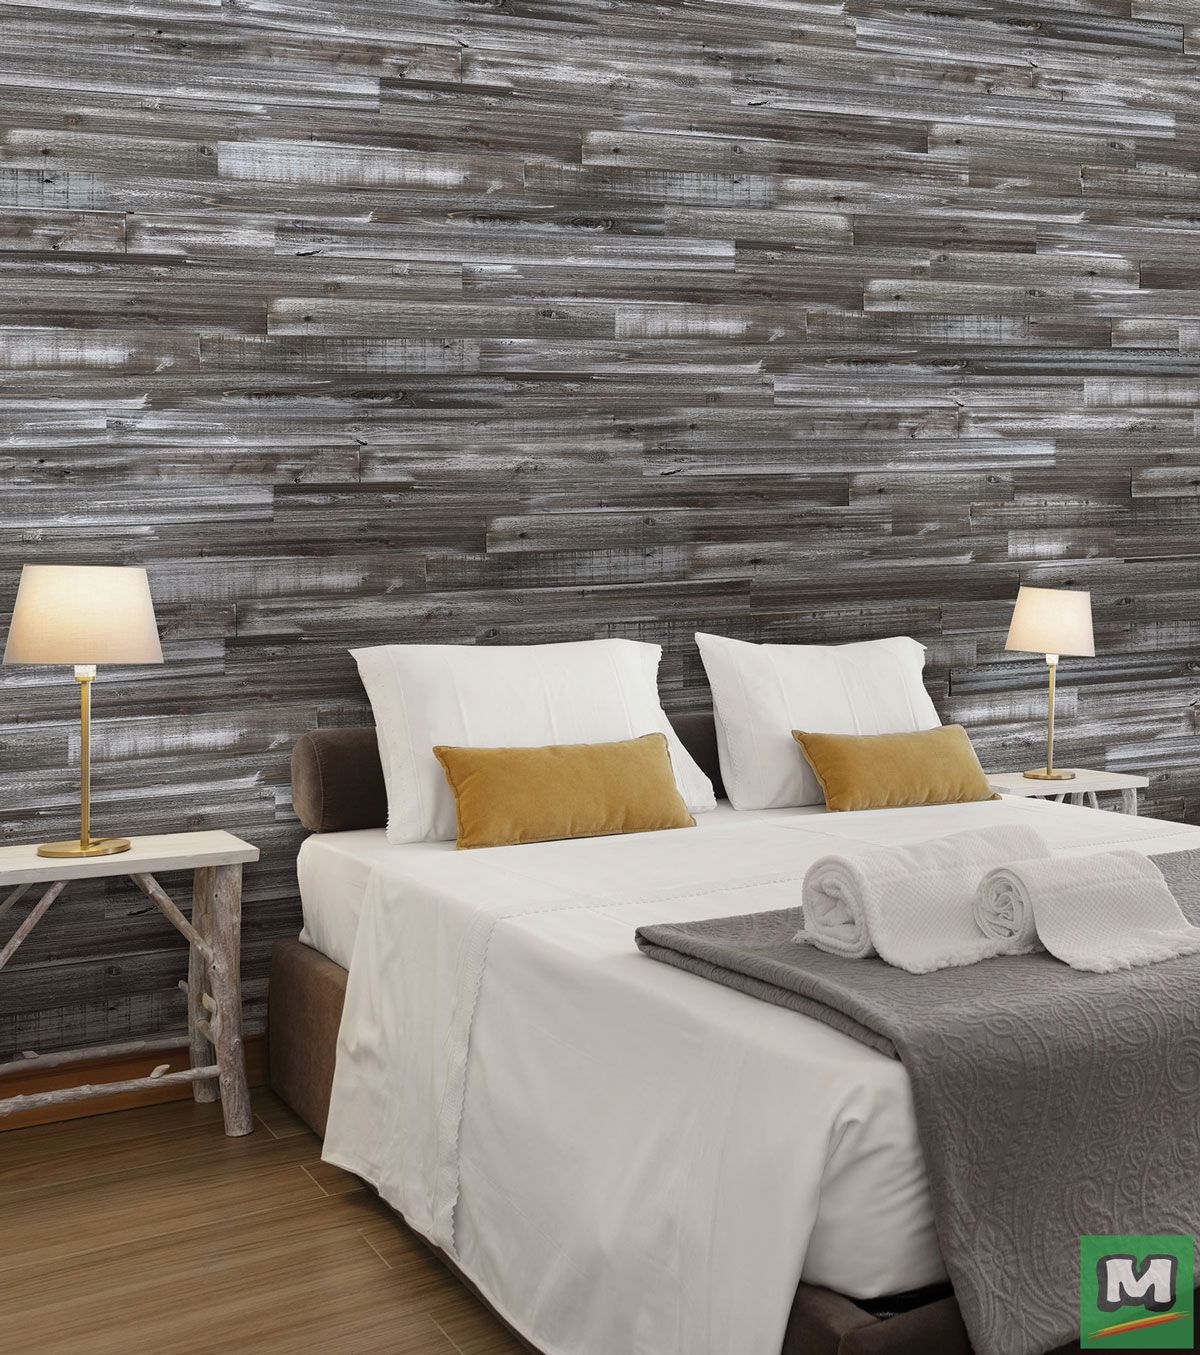 Accent Wall For Room With Panelling: Create An Accent Wall In Your Bedroom Or Living Room With